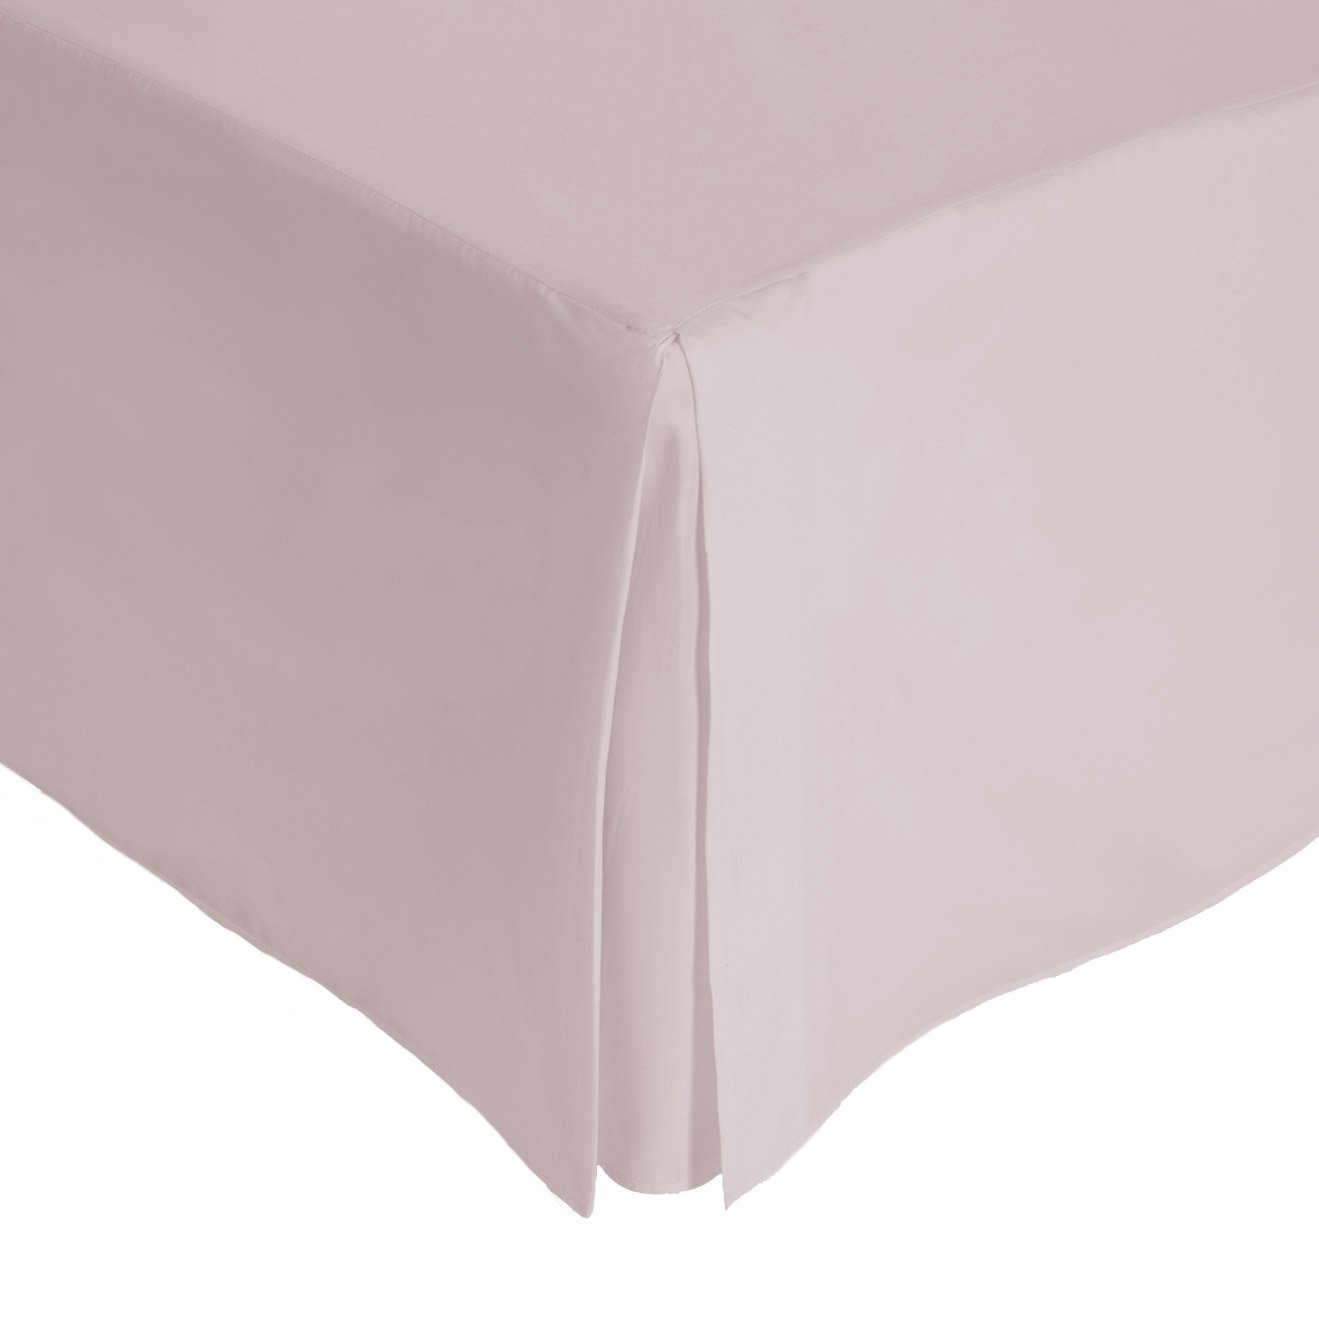 Julian Charles Double Percale 180 Thread Count Base Valance, Cream Rectella PERCALE2-031134